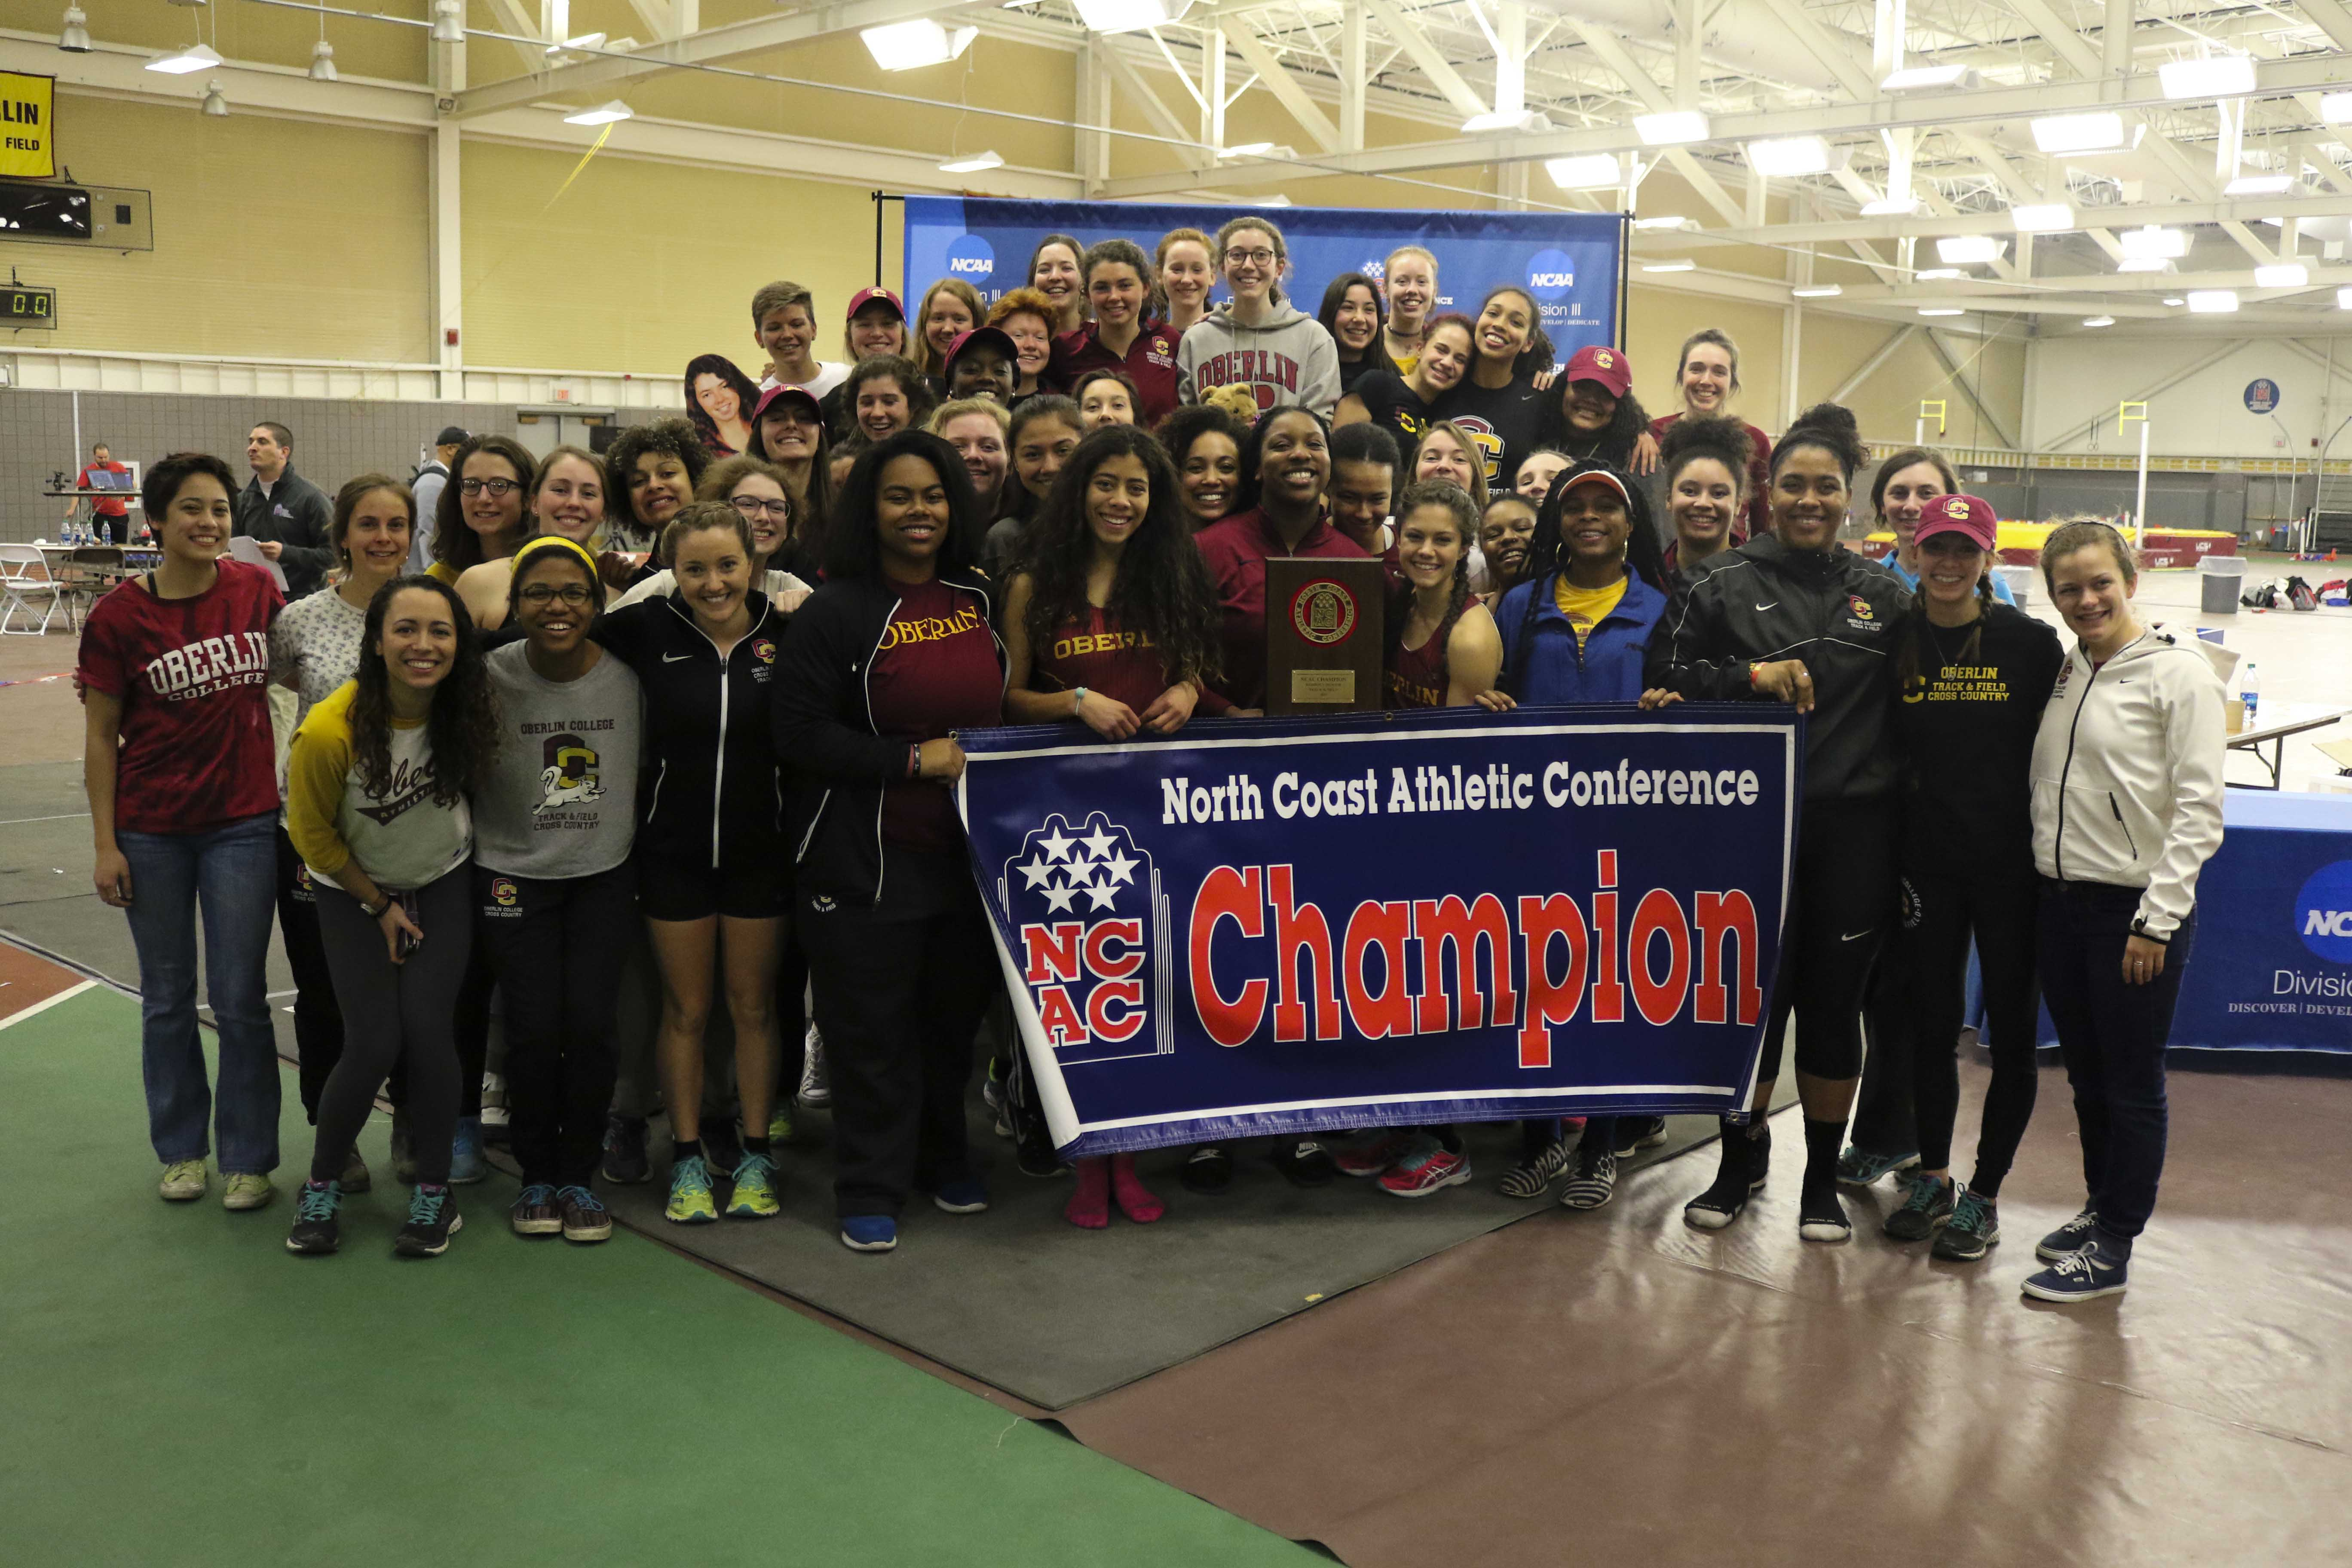 Women's track and field recorded its first outright indoor conference championship in program history last weekend, defeating Ohio Wesleyan University by a 38 point margin.